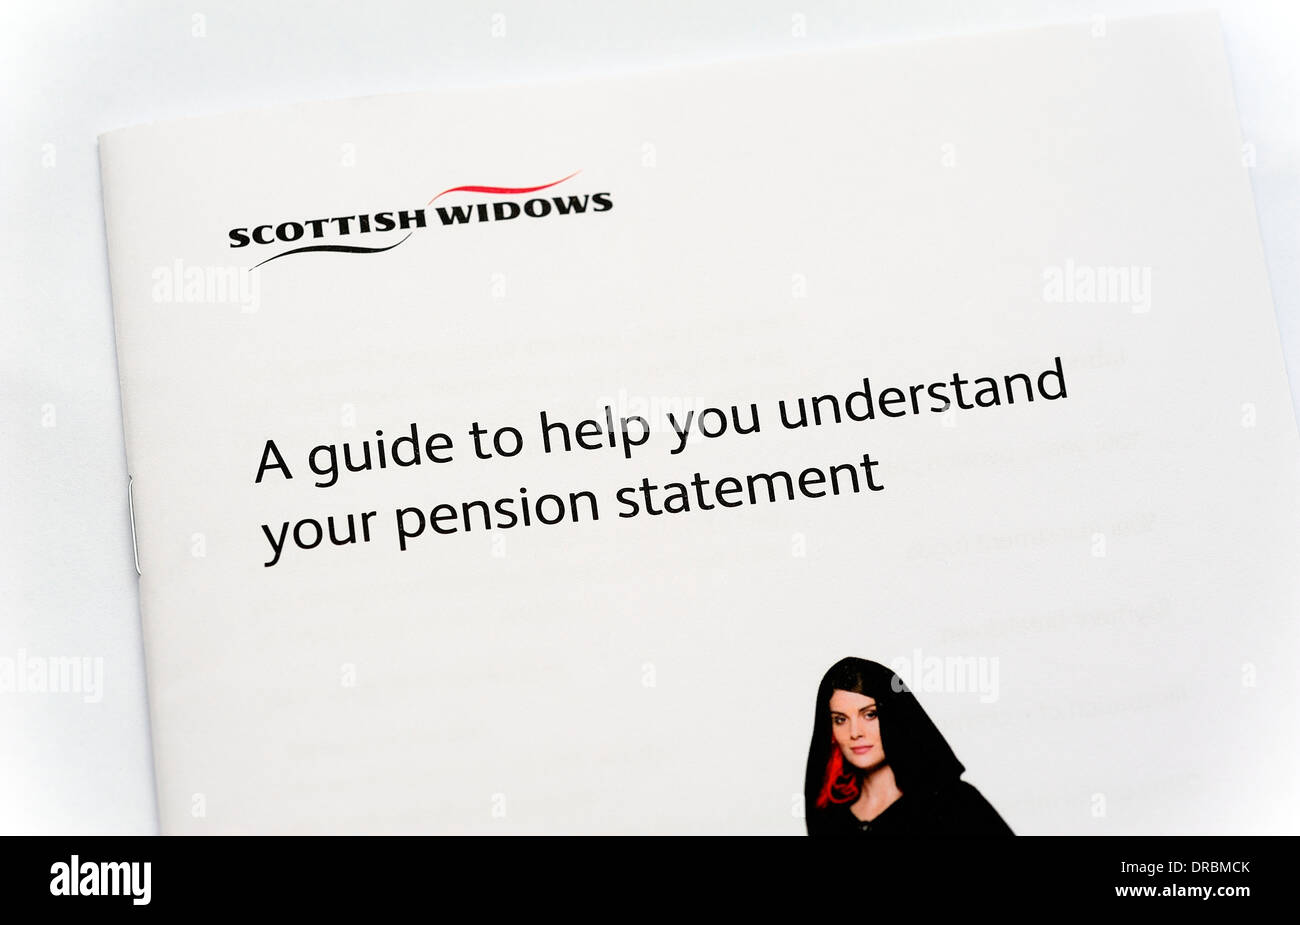 Scottish widows guide to help you understand your pension statement - Stock Image